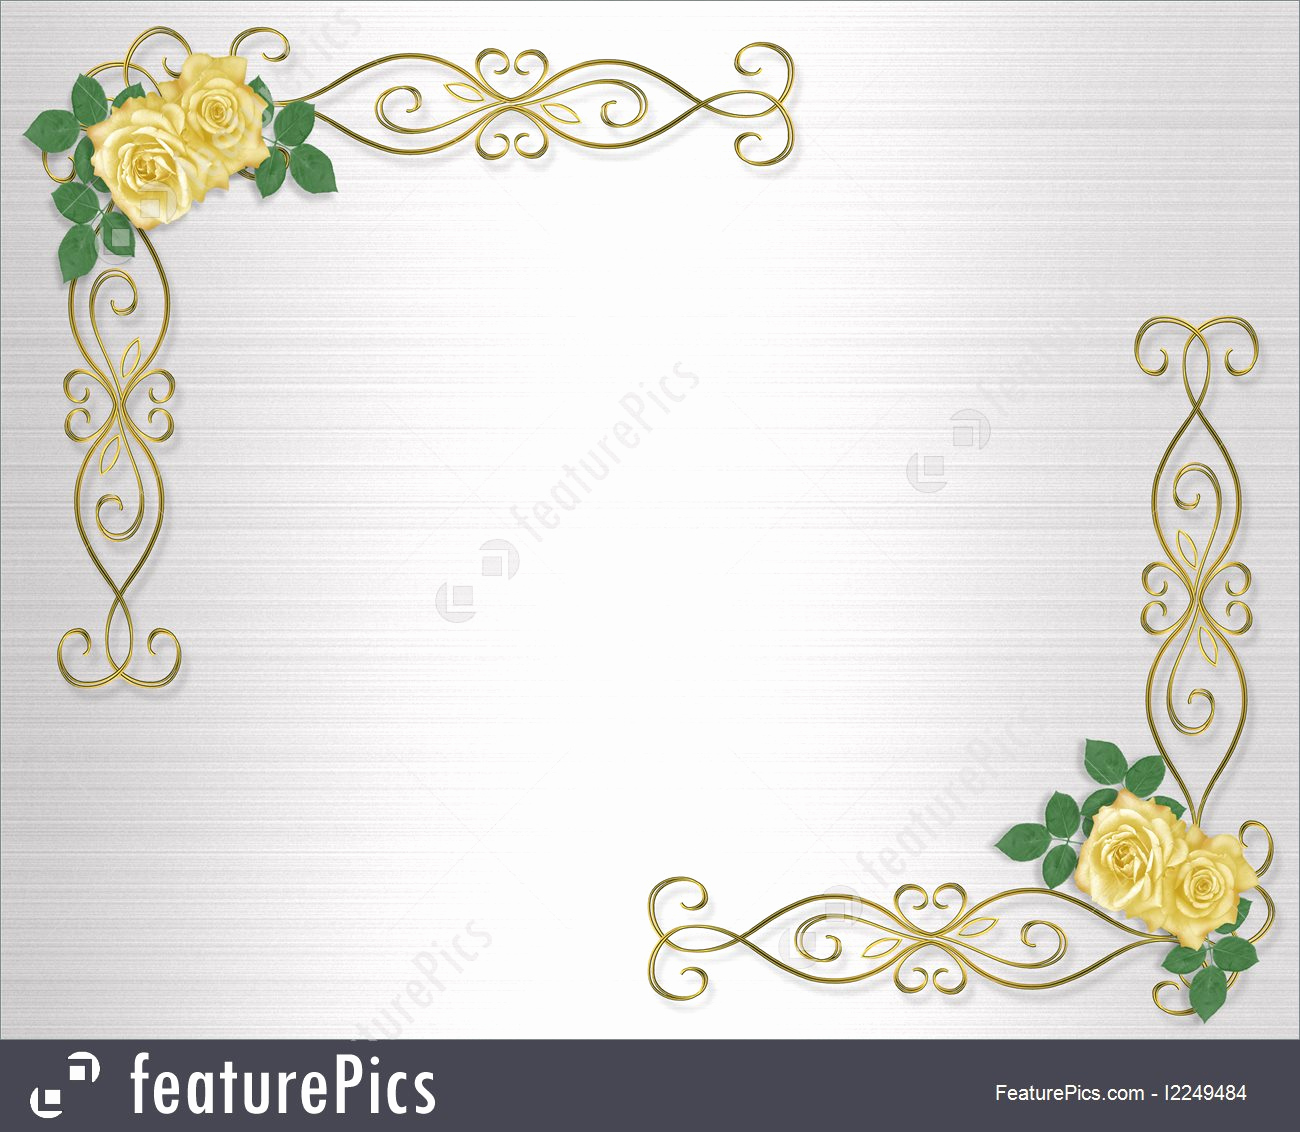 Wedding Invitation Border Design Luxury Templates Yellow Roses Wedding Invitation Border Stock